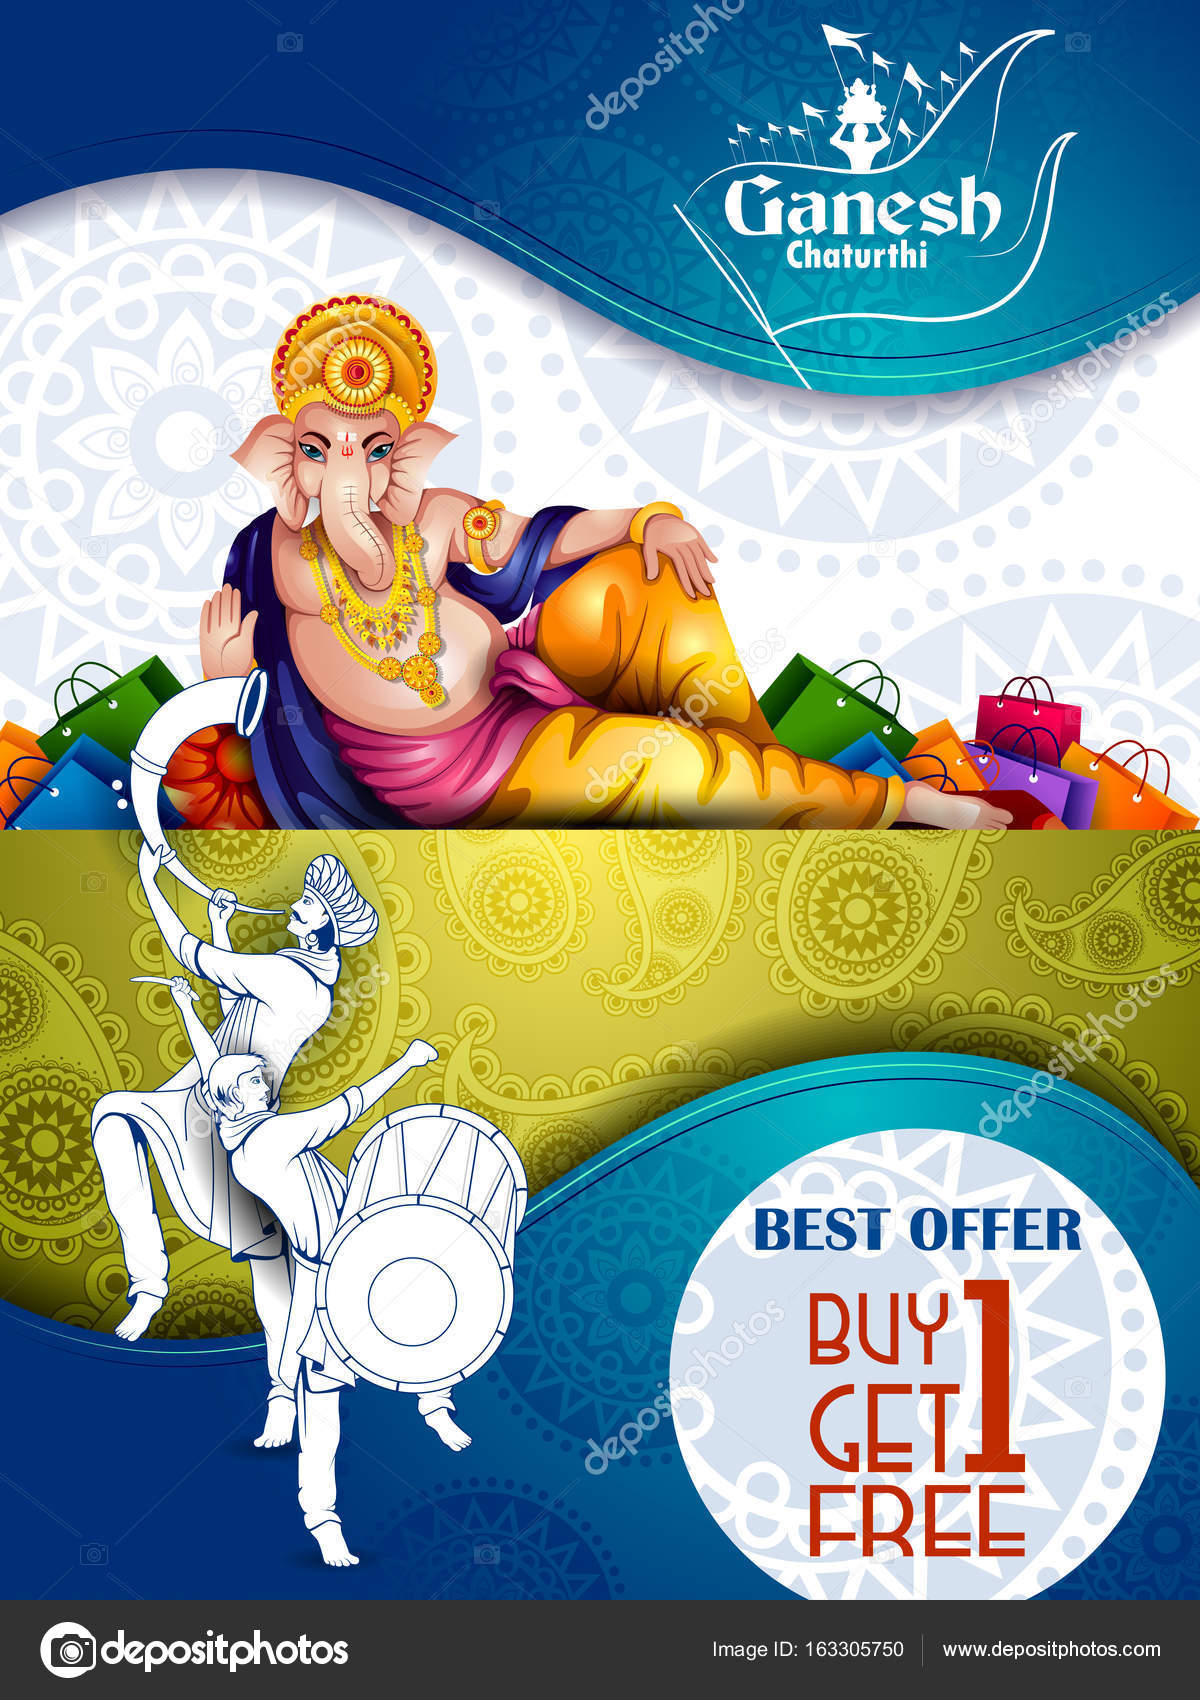 ganesh chaturthi compositon for 3 std An essay can have many purposes, but the basic structure is the same no matter what when writing an essay to it may be to argue for a particular point of view or to explain the steps necessary to complete a task.